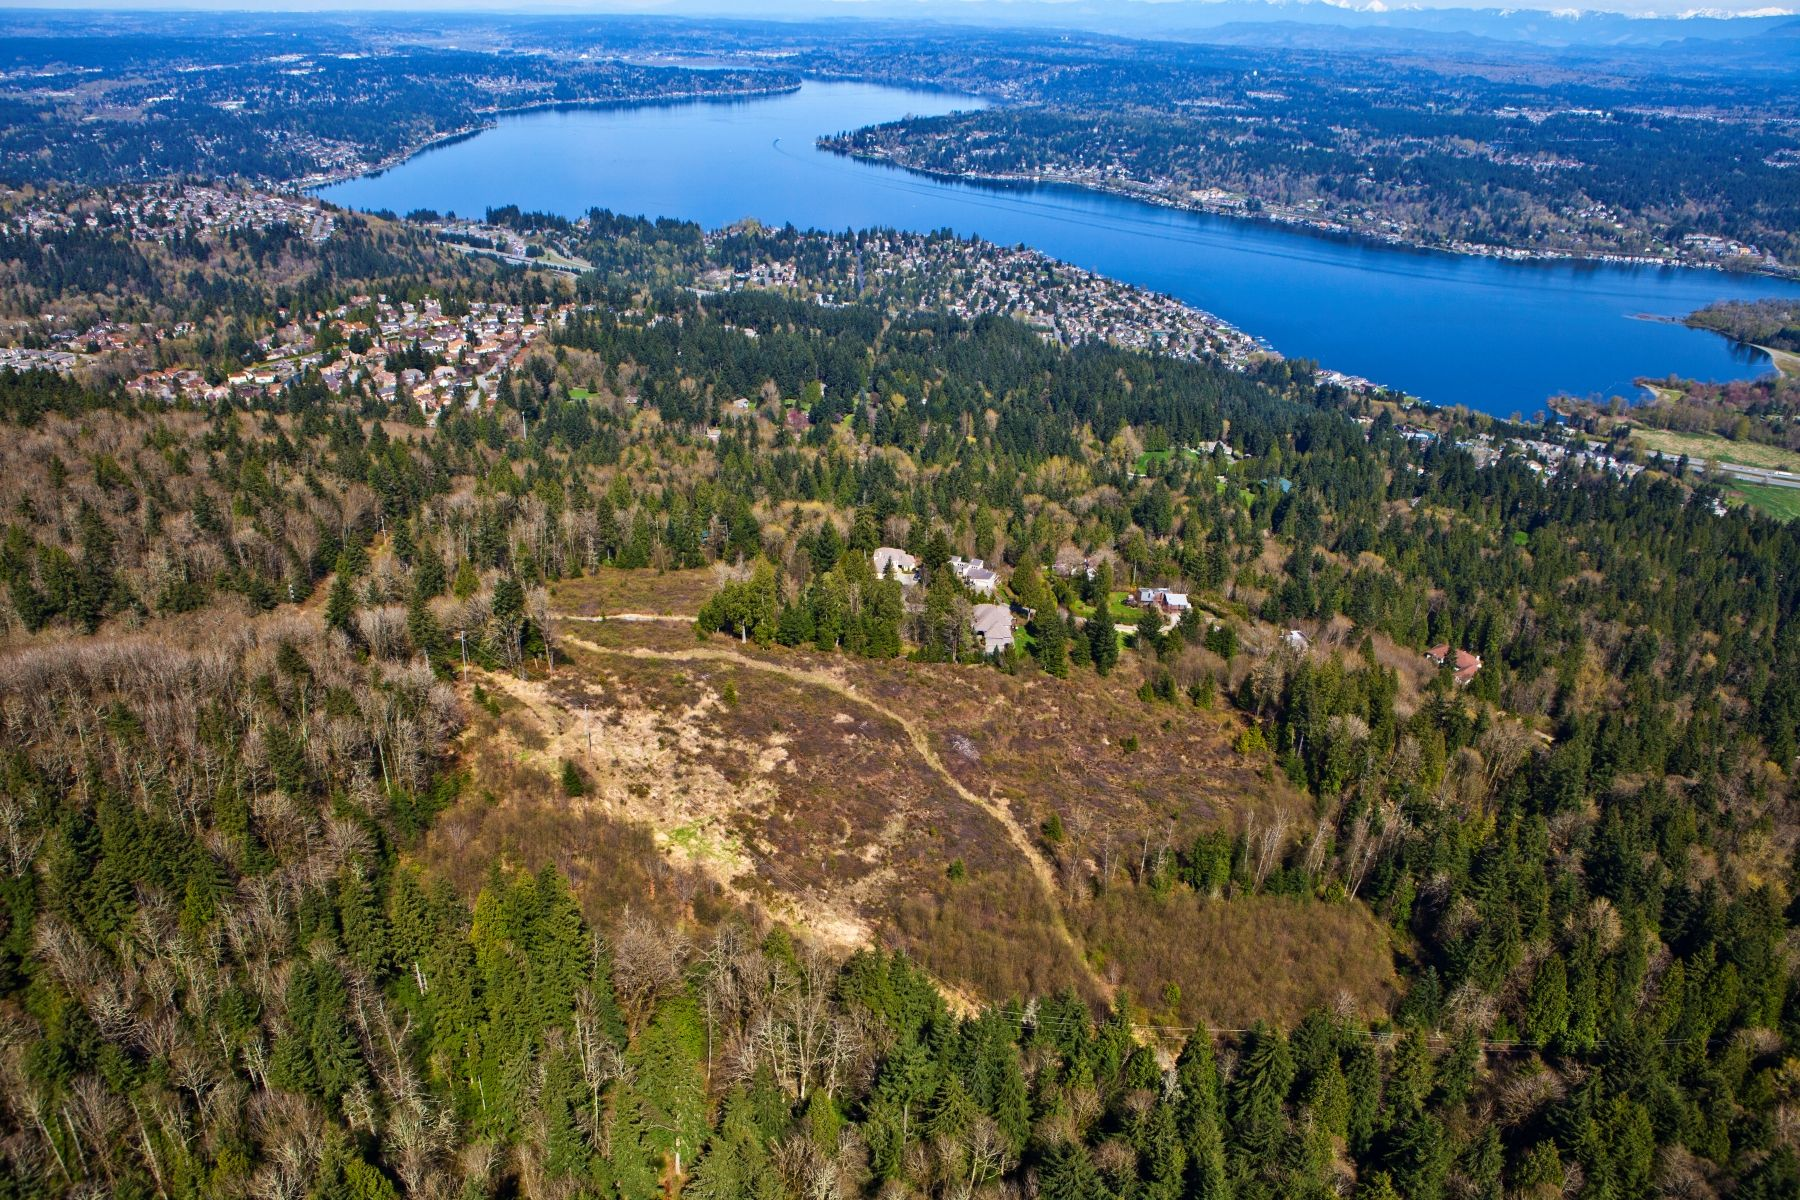 Land for Sale at 18500 SE 65th Place, Issaquah, WA 98027 18500 SE 65th Place Issaquah, Washington 98027 United States